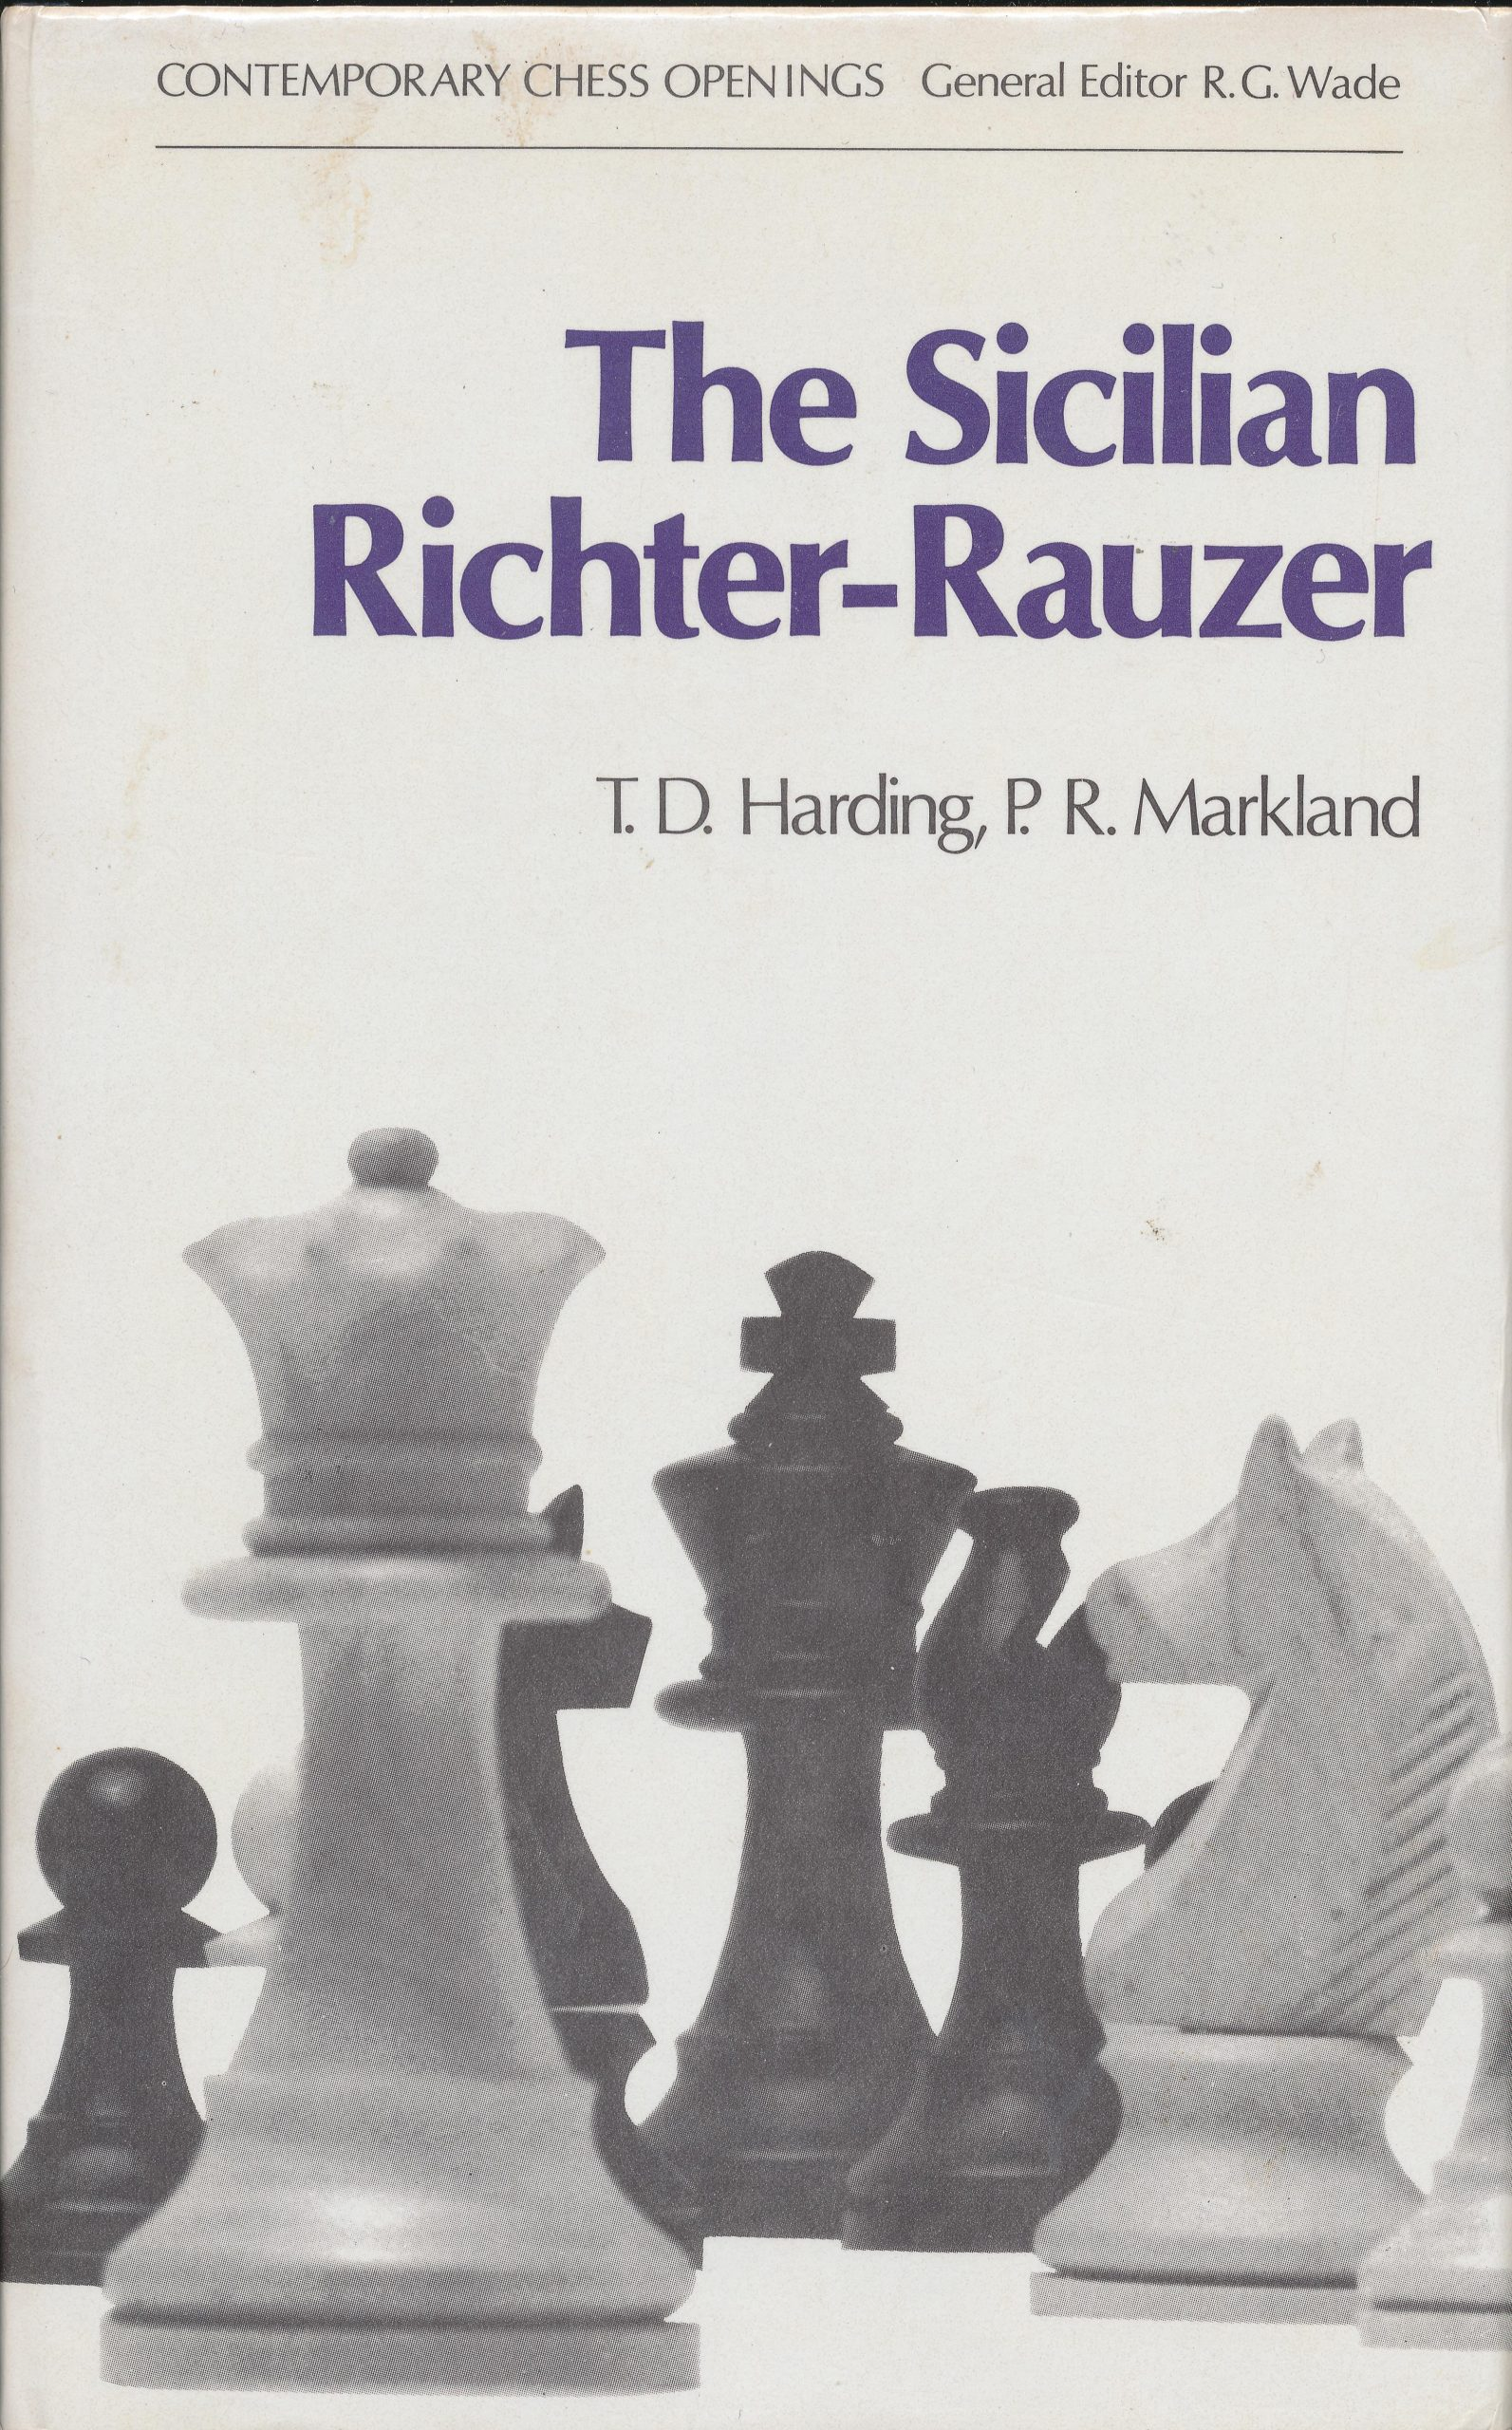 The Sicilian Richter-Rauzer, TD Hardign and PR Markland, Batsford, 975, ISBN 0 7134 2979 8